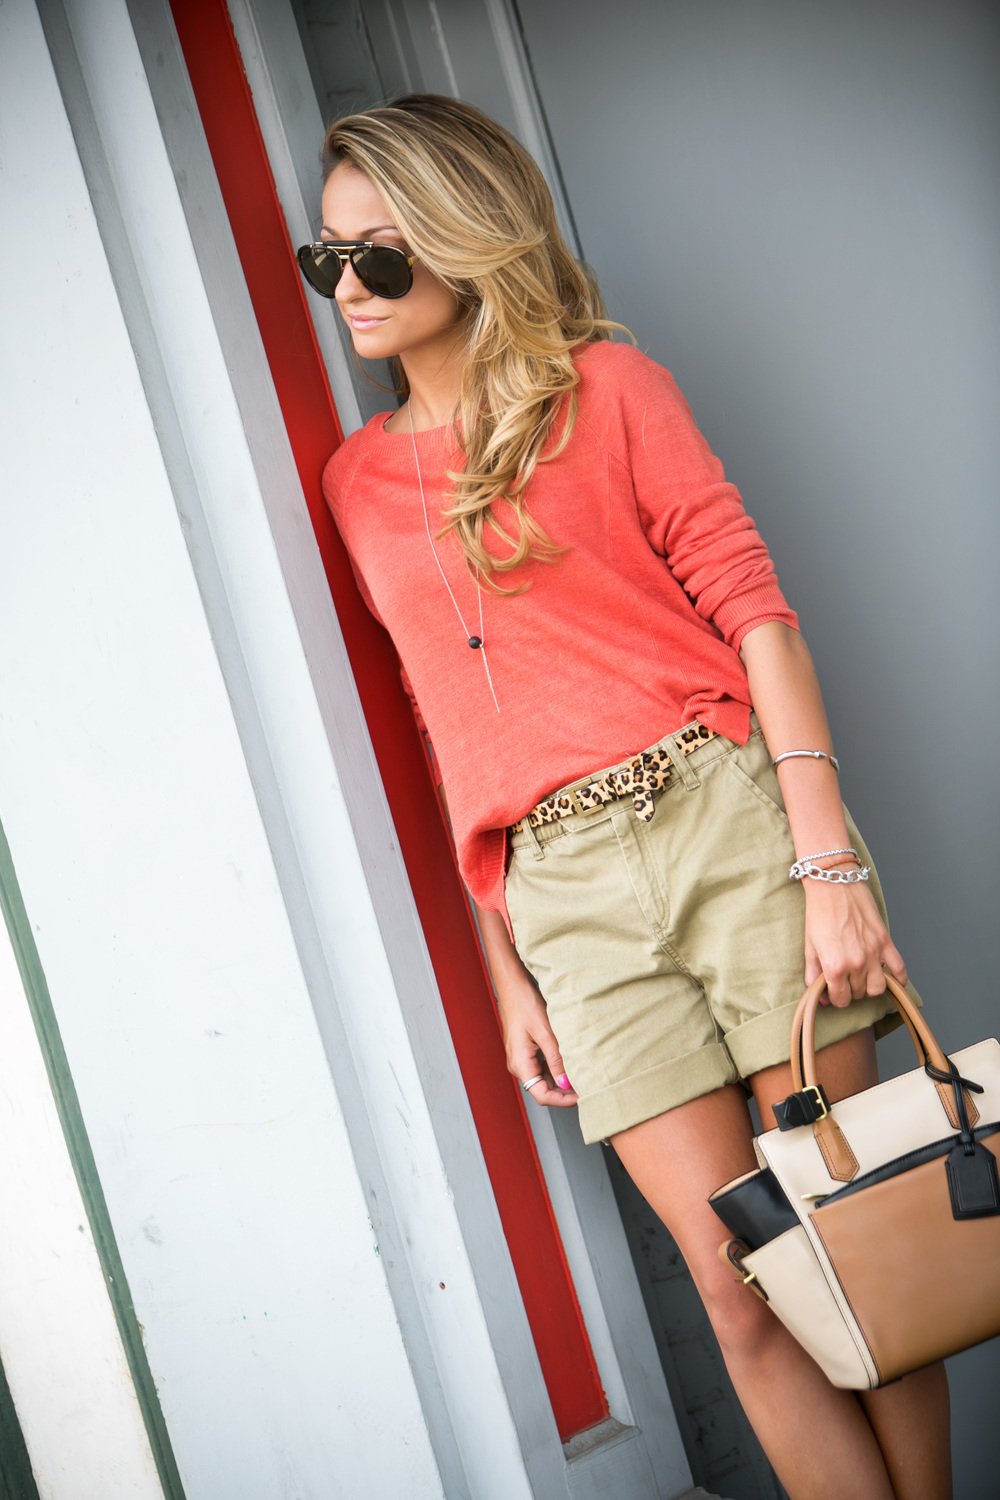 Jcrew:Sweater|Shorts|Belt|Bag:Reed Krakoff (Last Seen Here)| Pumps:Christian Louboutin